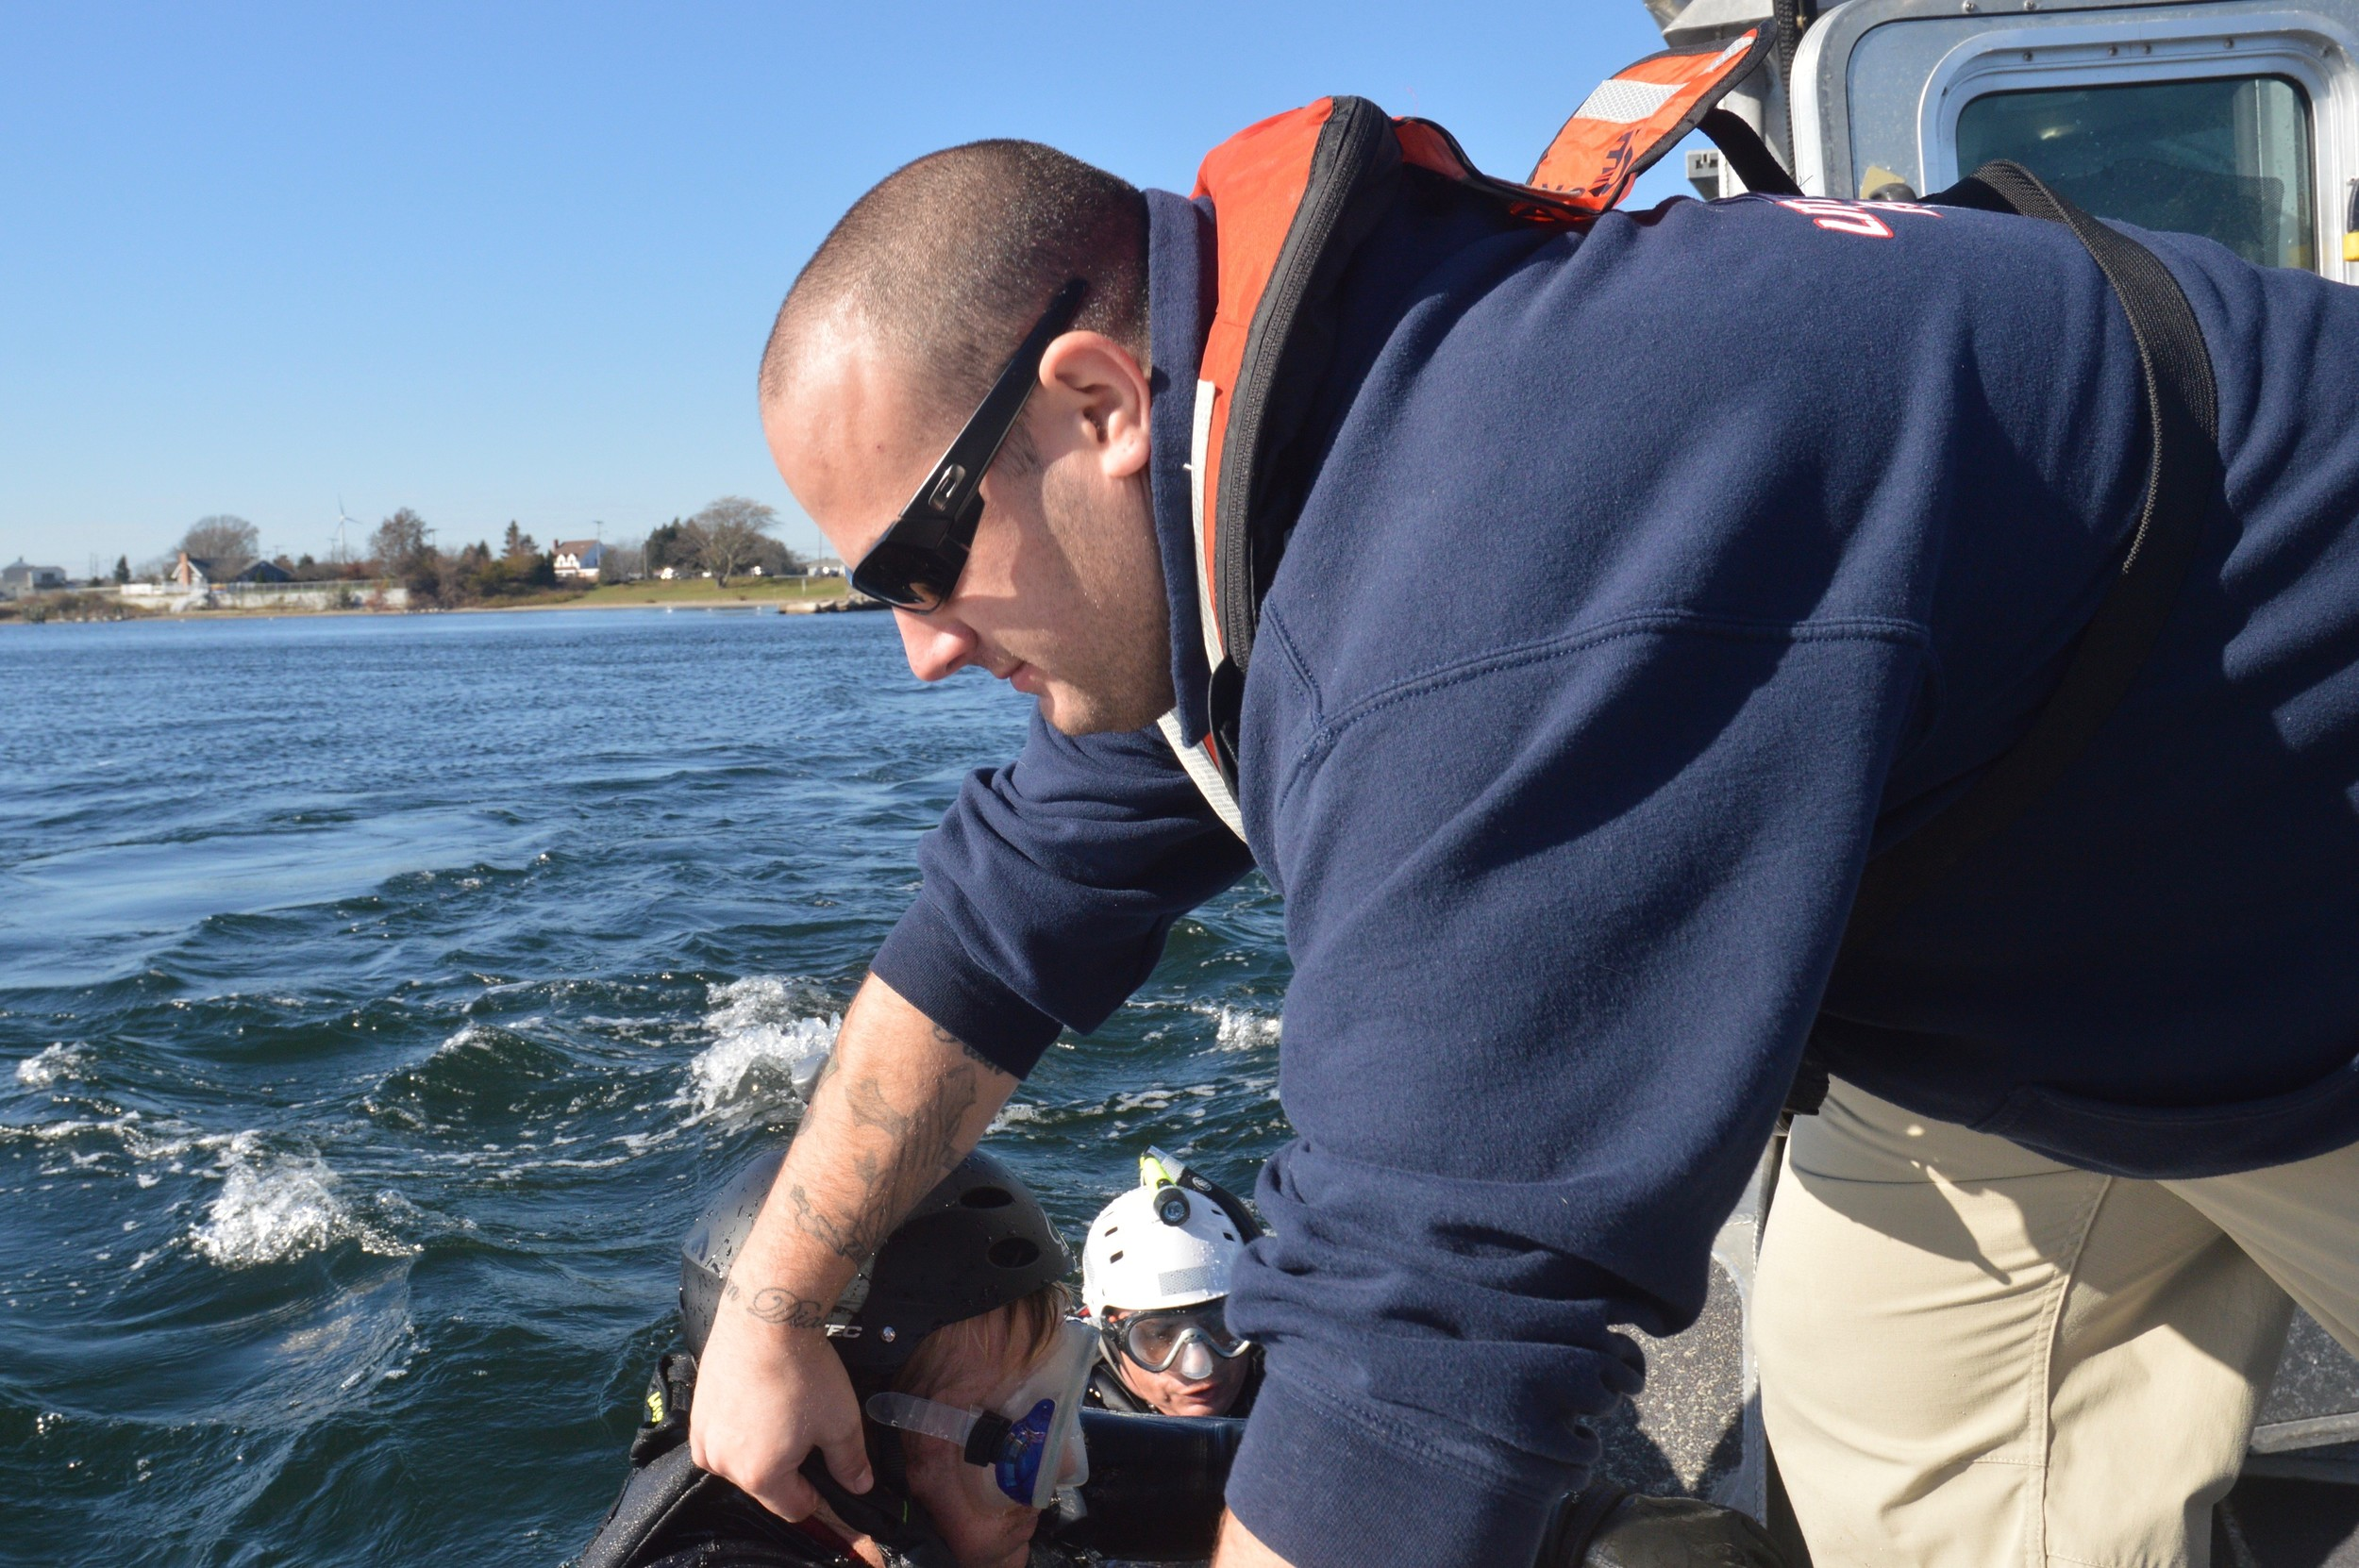 Little Compton firefighter Sam Hussey helps rescue drill swimmers aboard the Portsmouth harbormaster's boat in the Sakonnet River Basin.